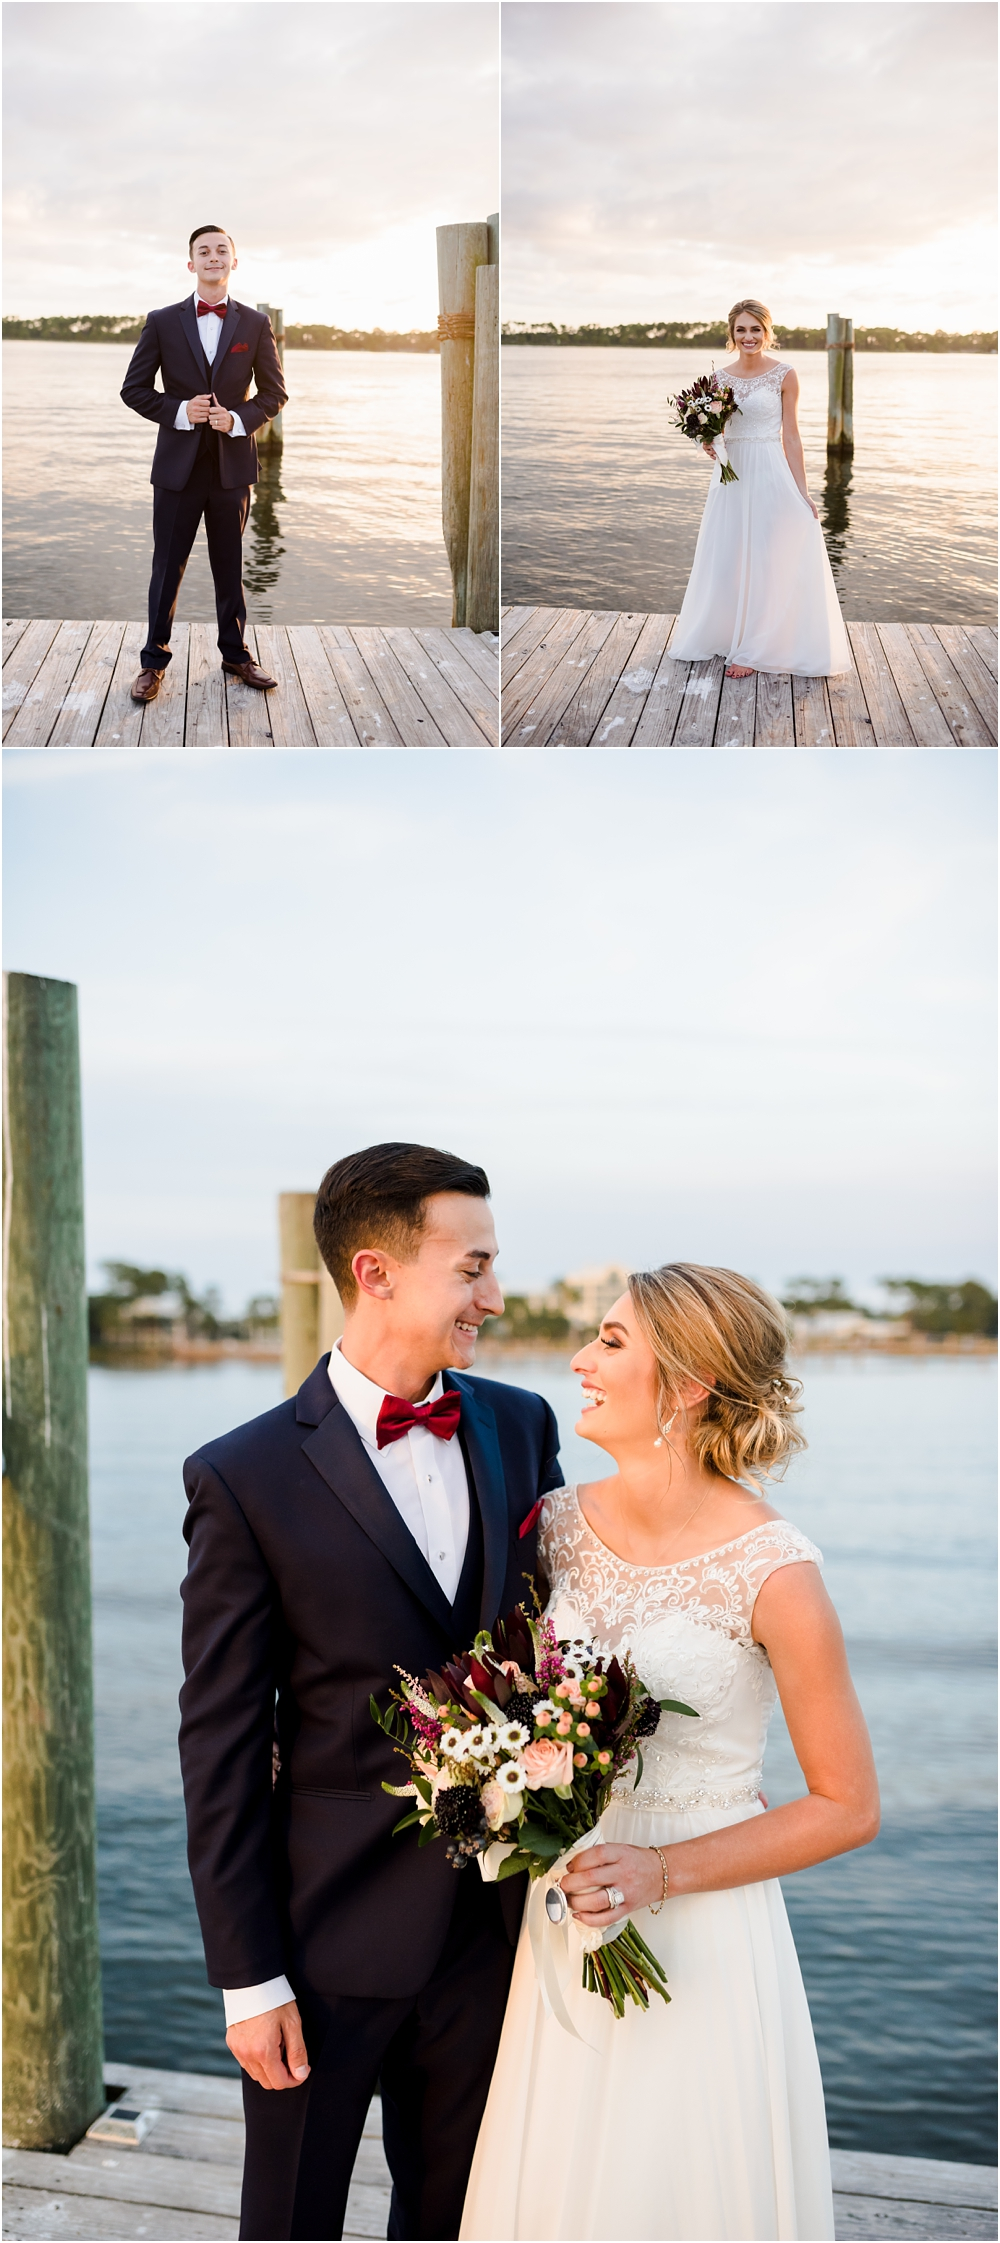 florida-wedding-photographer-30a-panama-city-beach-dothan-tallahassee-kiersten-grant-photography-weddings-family-engagement-photos-127.jpg